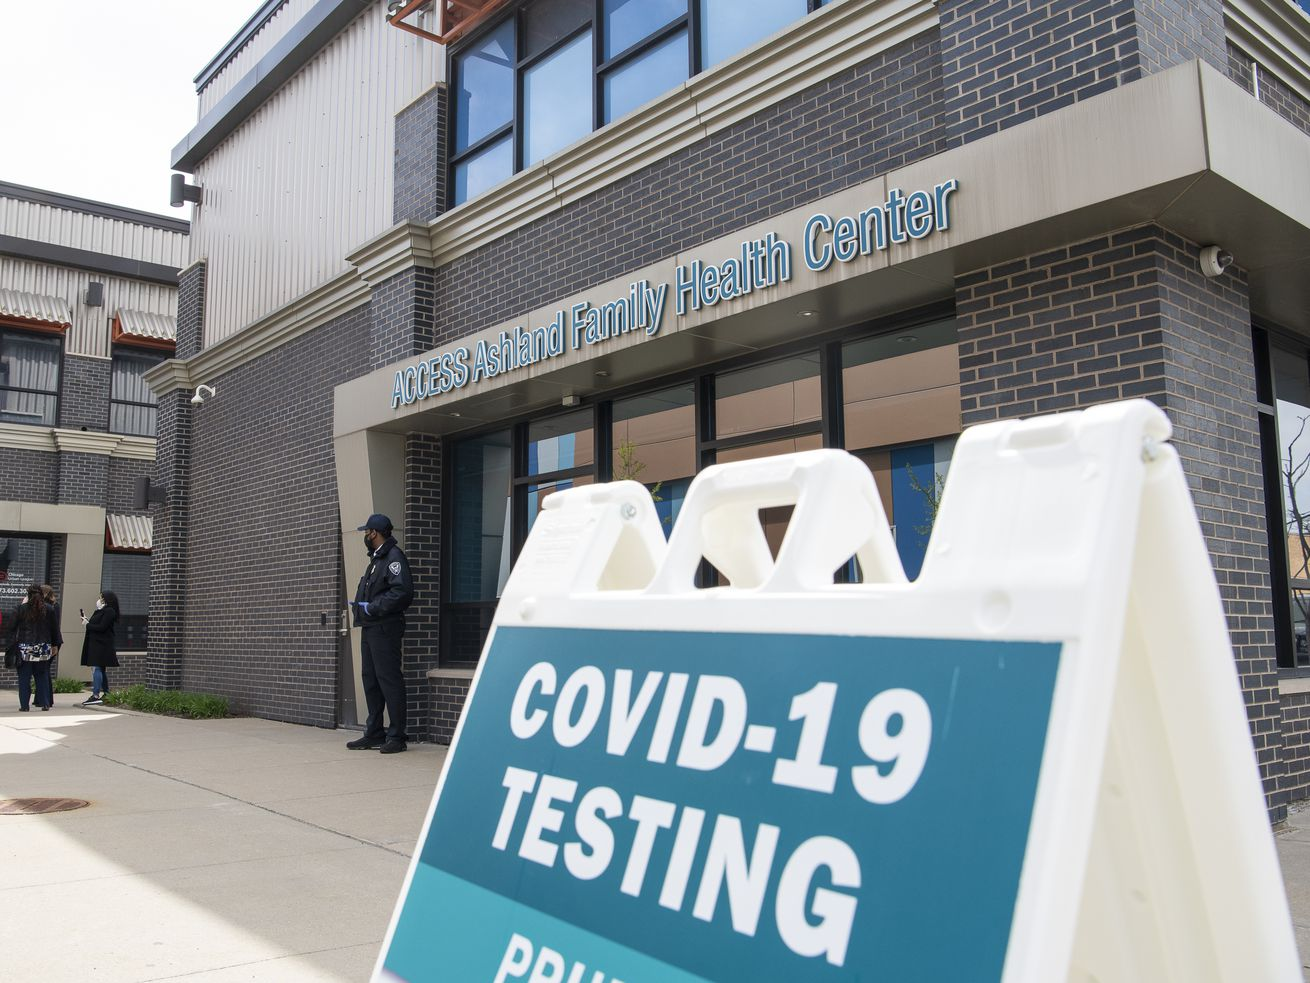 Illinois hits three new milestones in COVID-19 testing, still not enough for high school football, Gov. Pritzker says